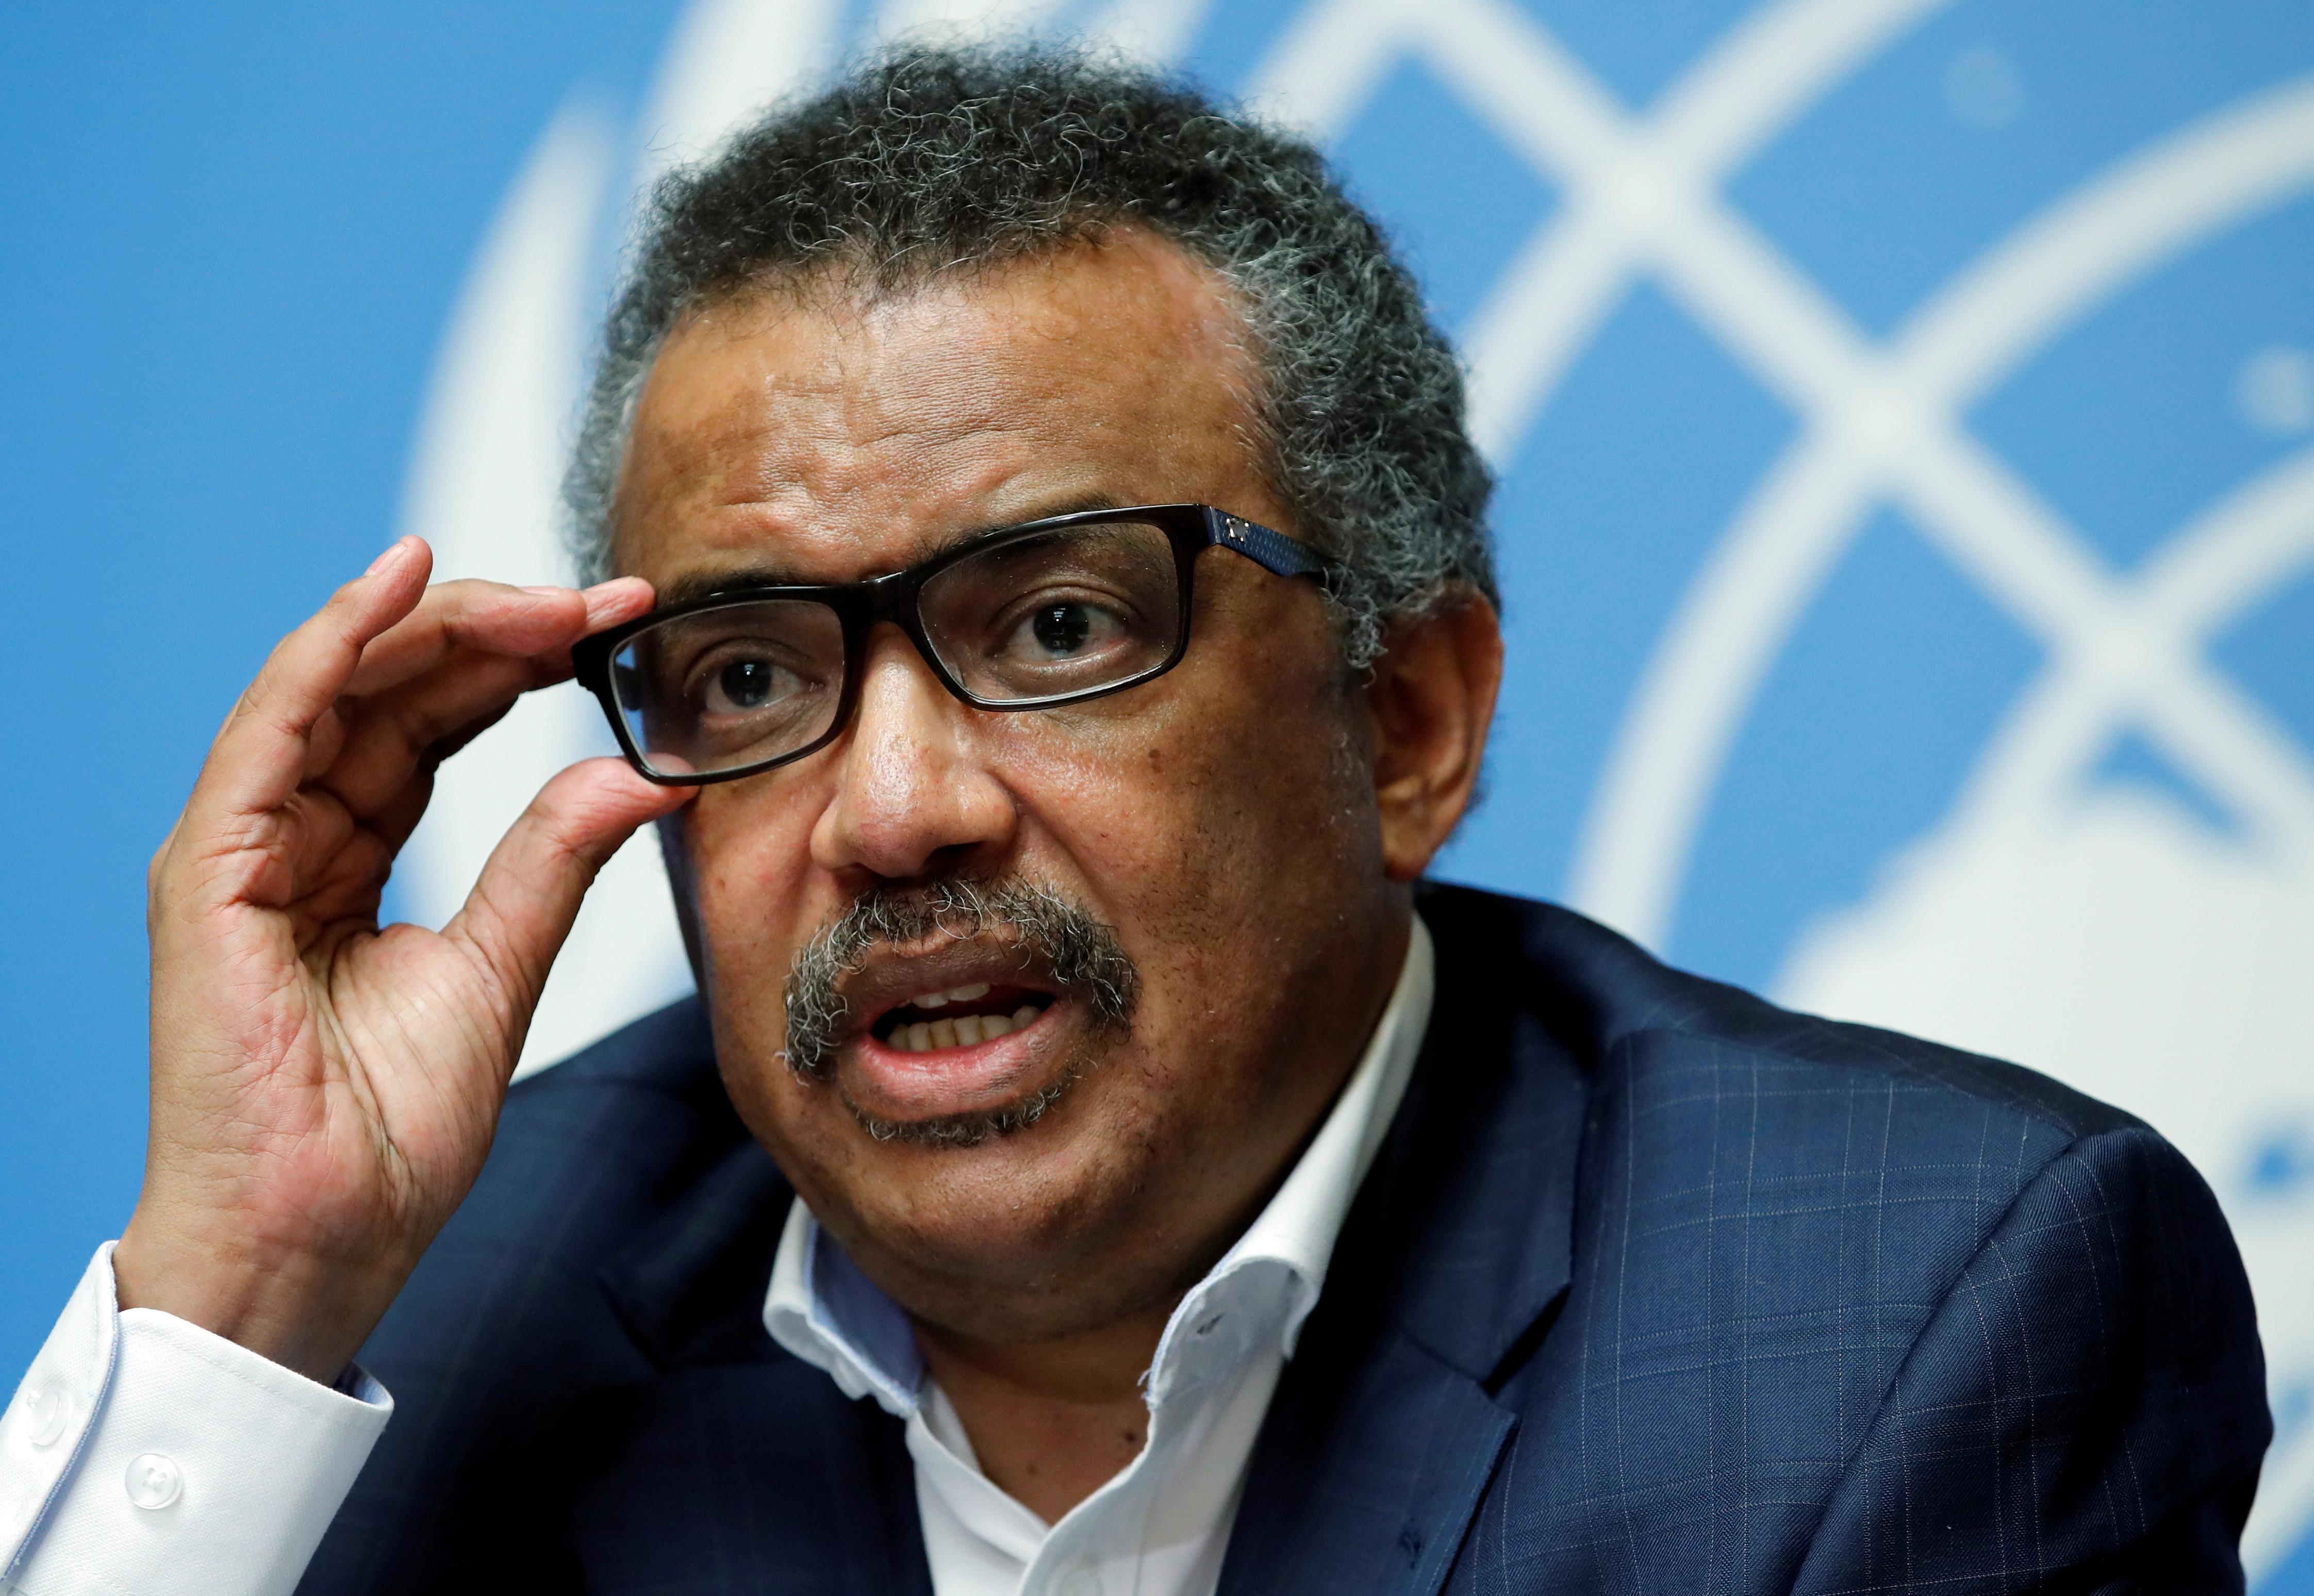 Director-General of the World Health Organization (WHO) Tedros Adhanom Ghebreyesus attends a news conference after an Emergency Committee meeting on the Ebola outbreak in the Democratic Republic of Congo at the United Nations in Geneva, Switzerland, August 14, 2018.  Denis Balibouse